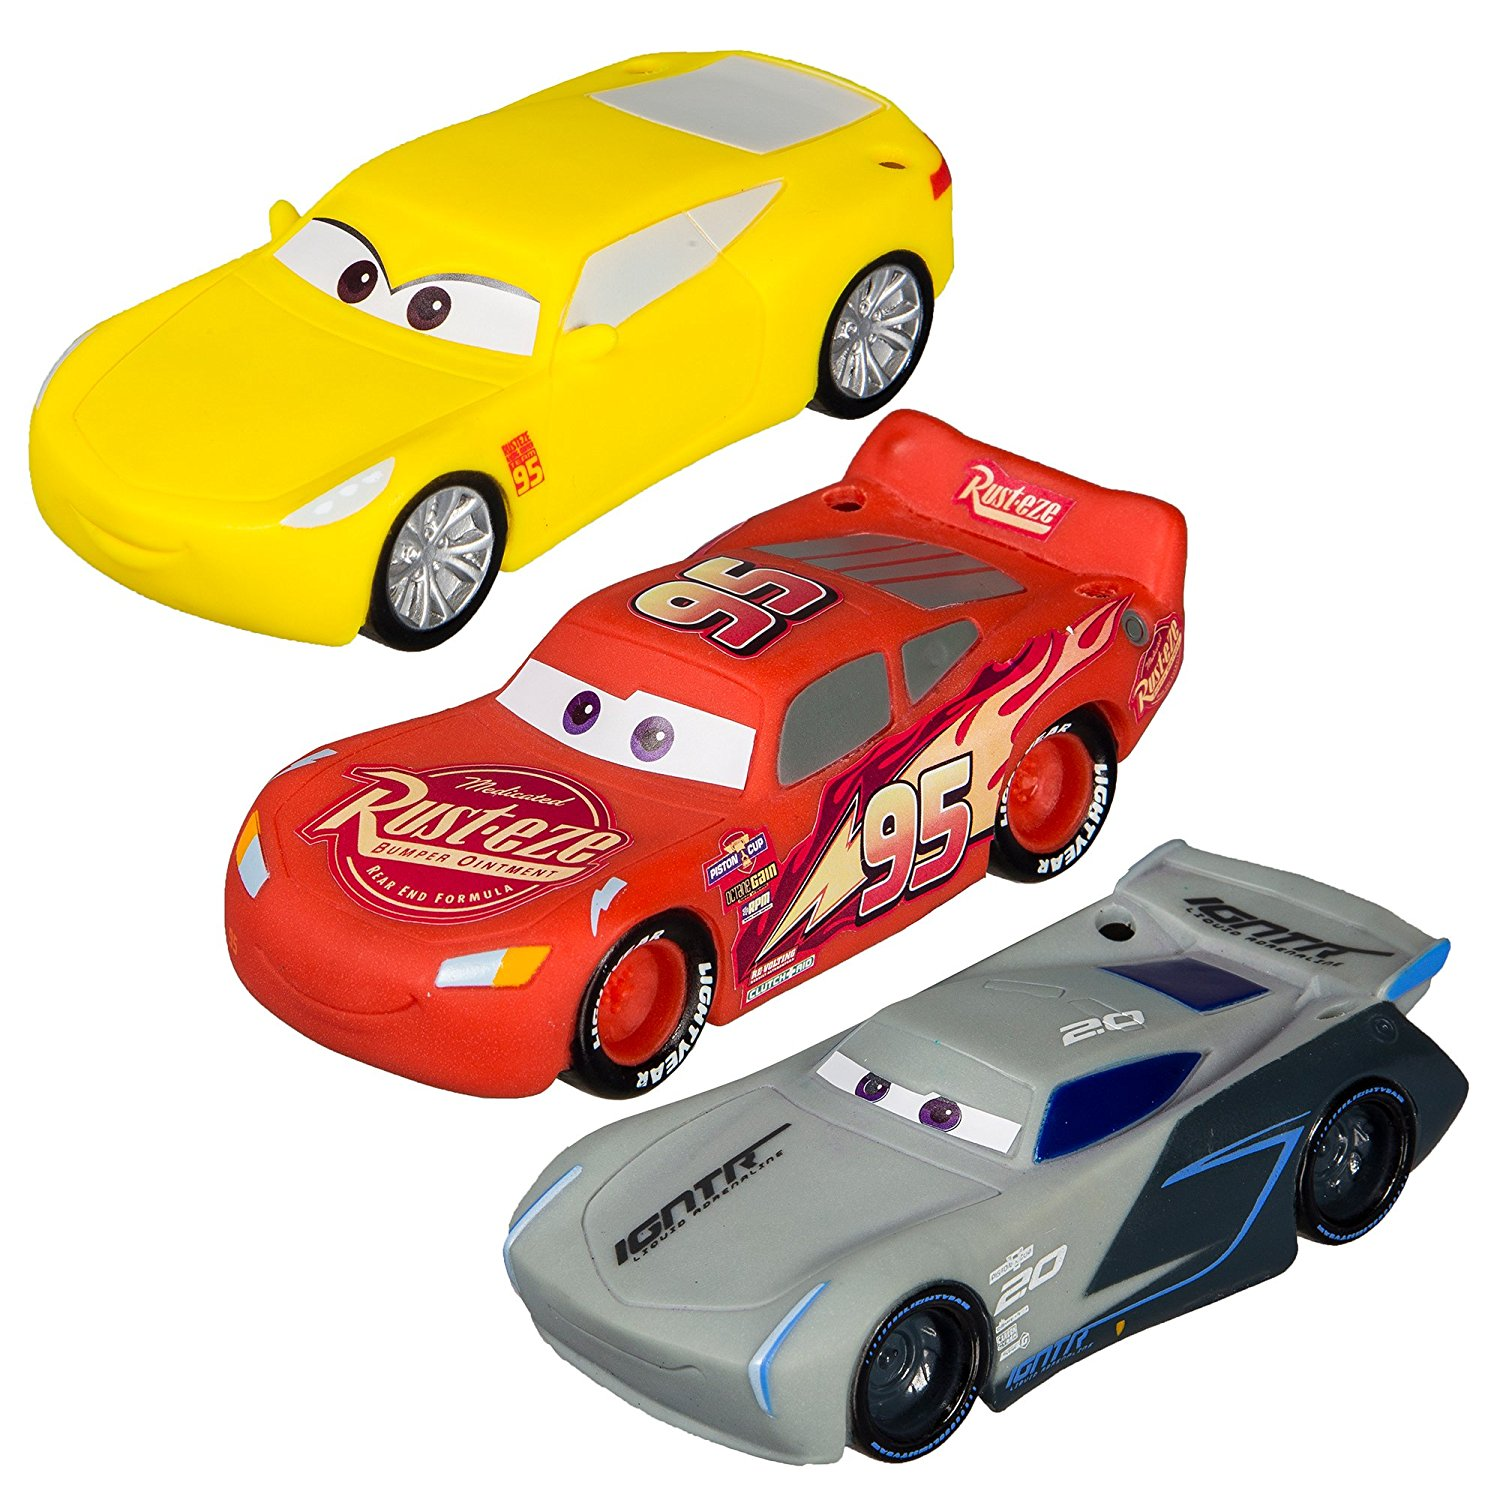 Toys For Cars : New disney pixar cars movie toys and books for kids